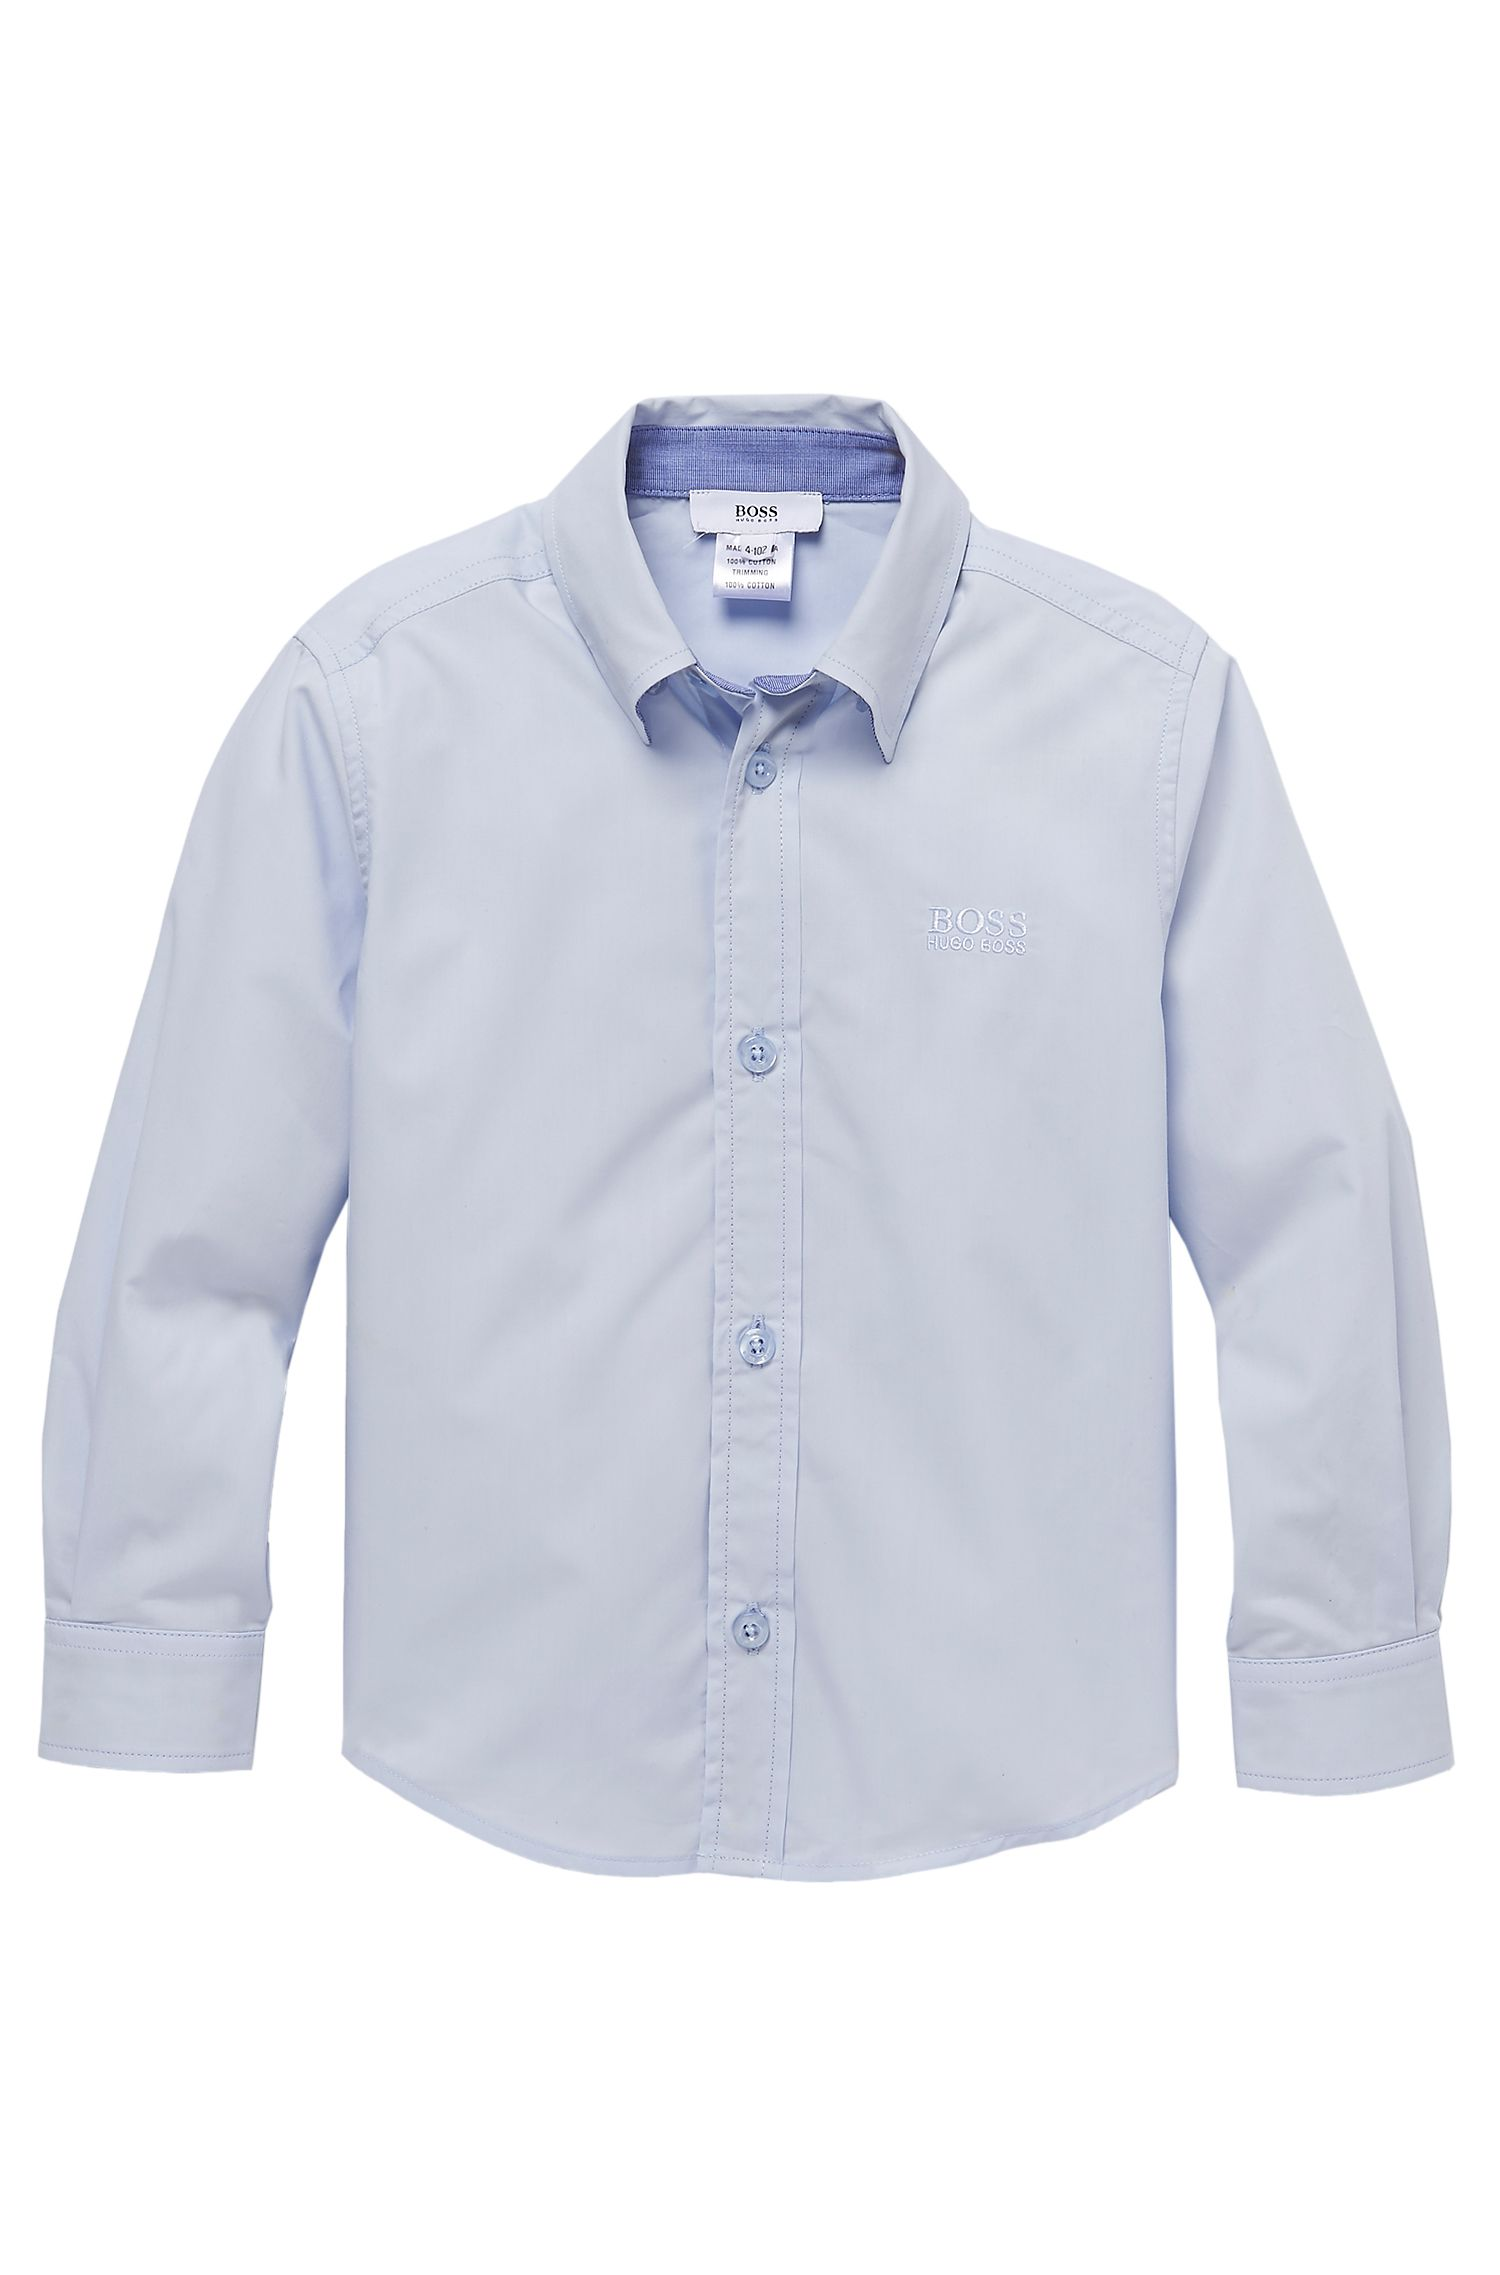 'J25660' | Boys Cotton Button Down Shirt